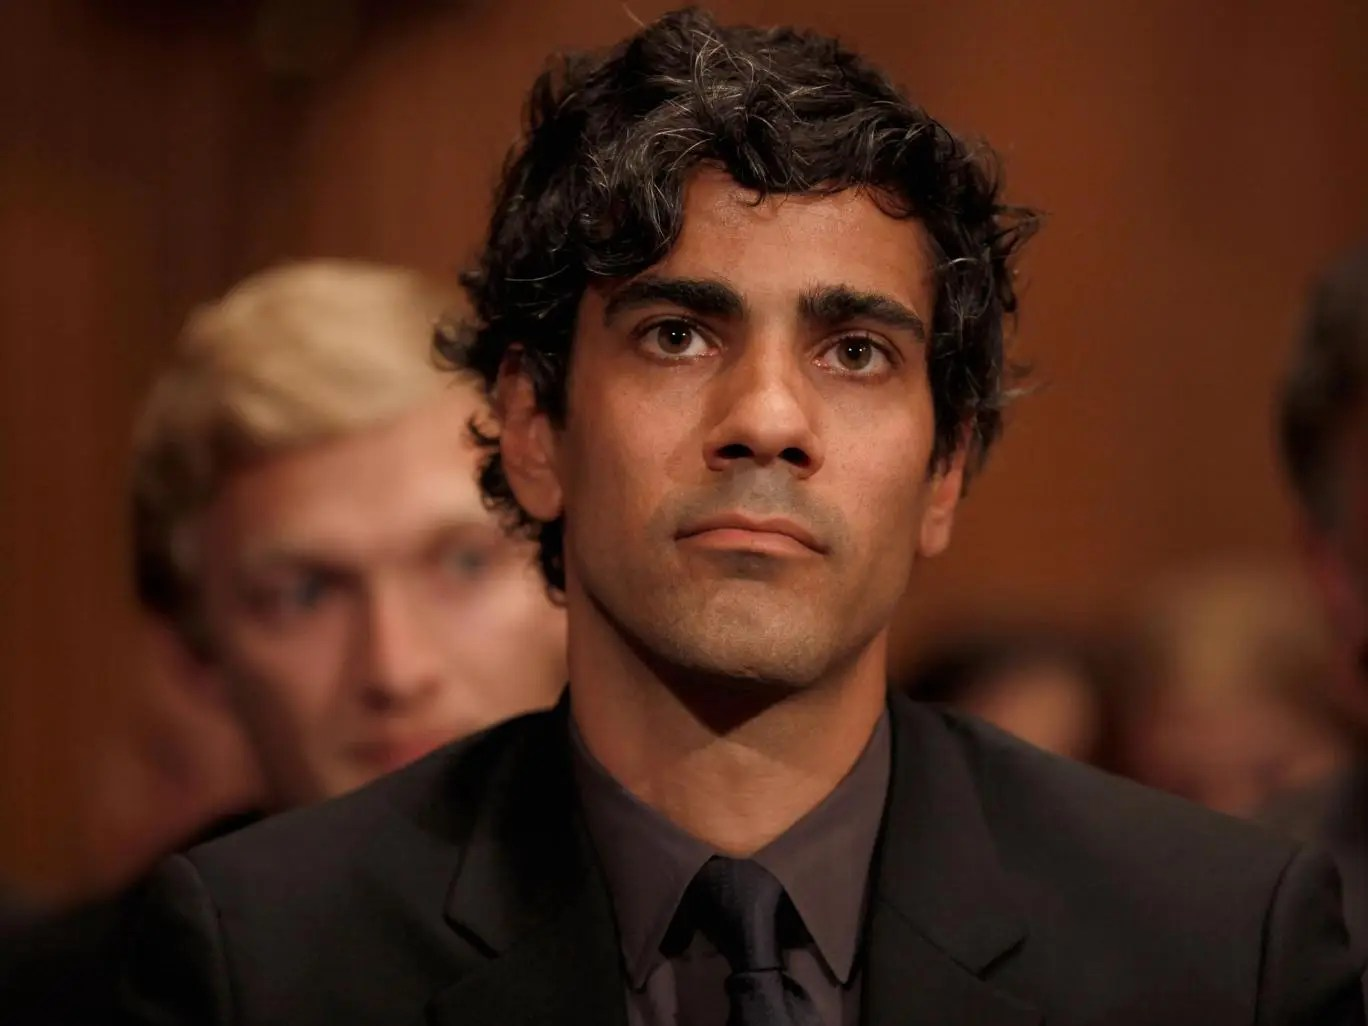 Yelp CEO Jeremy Stoppelman listens to Google Executive Chairman Eric Schmidt during a US Senate Judiciary hearing on alleged anti-competitive practices by Google in 2011